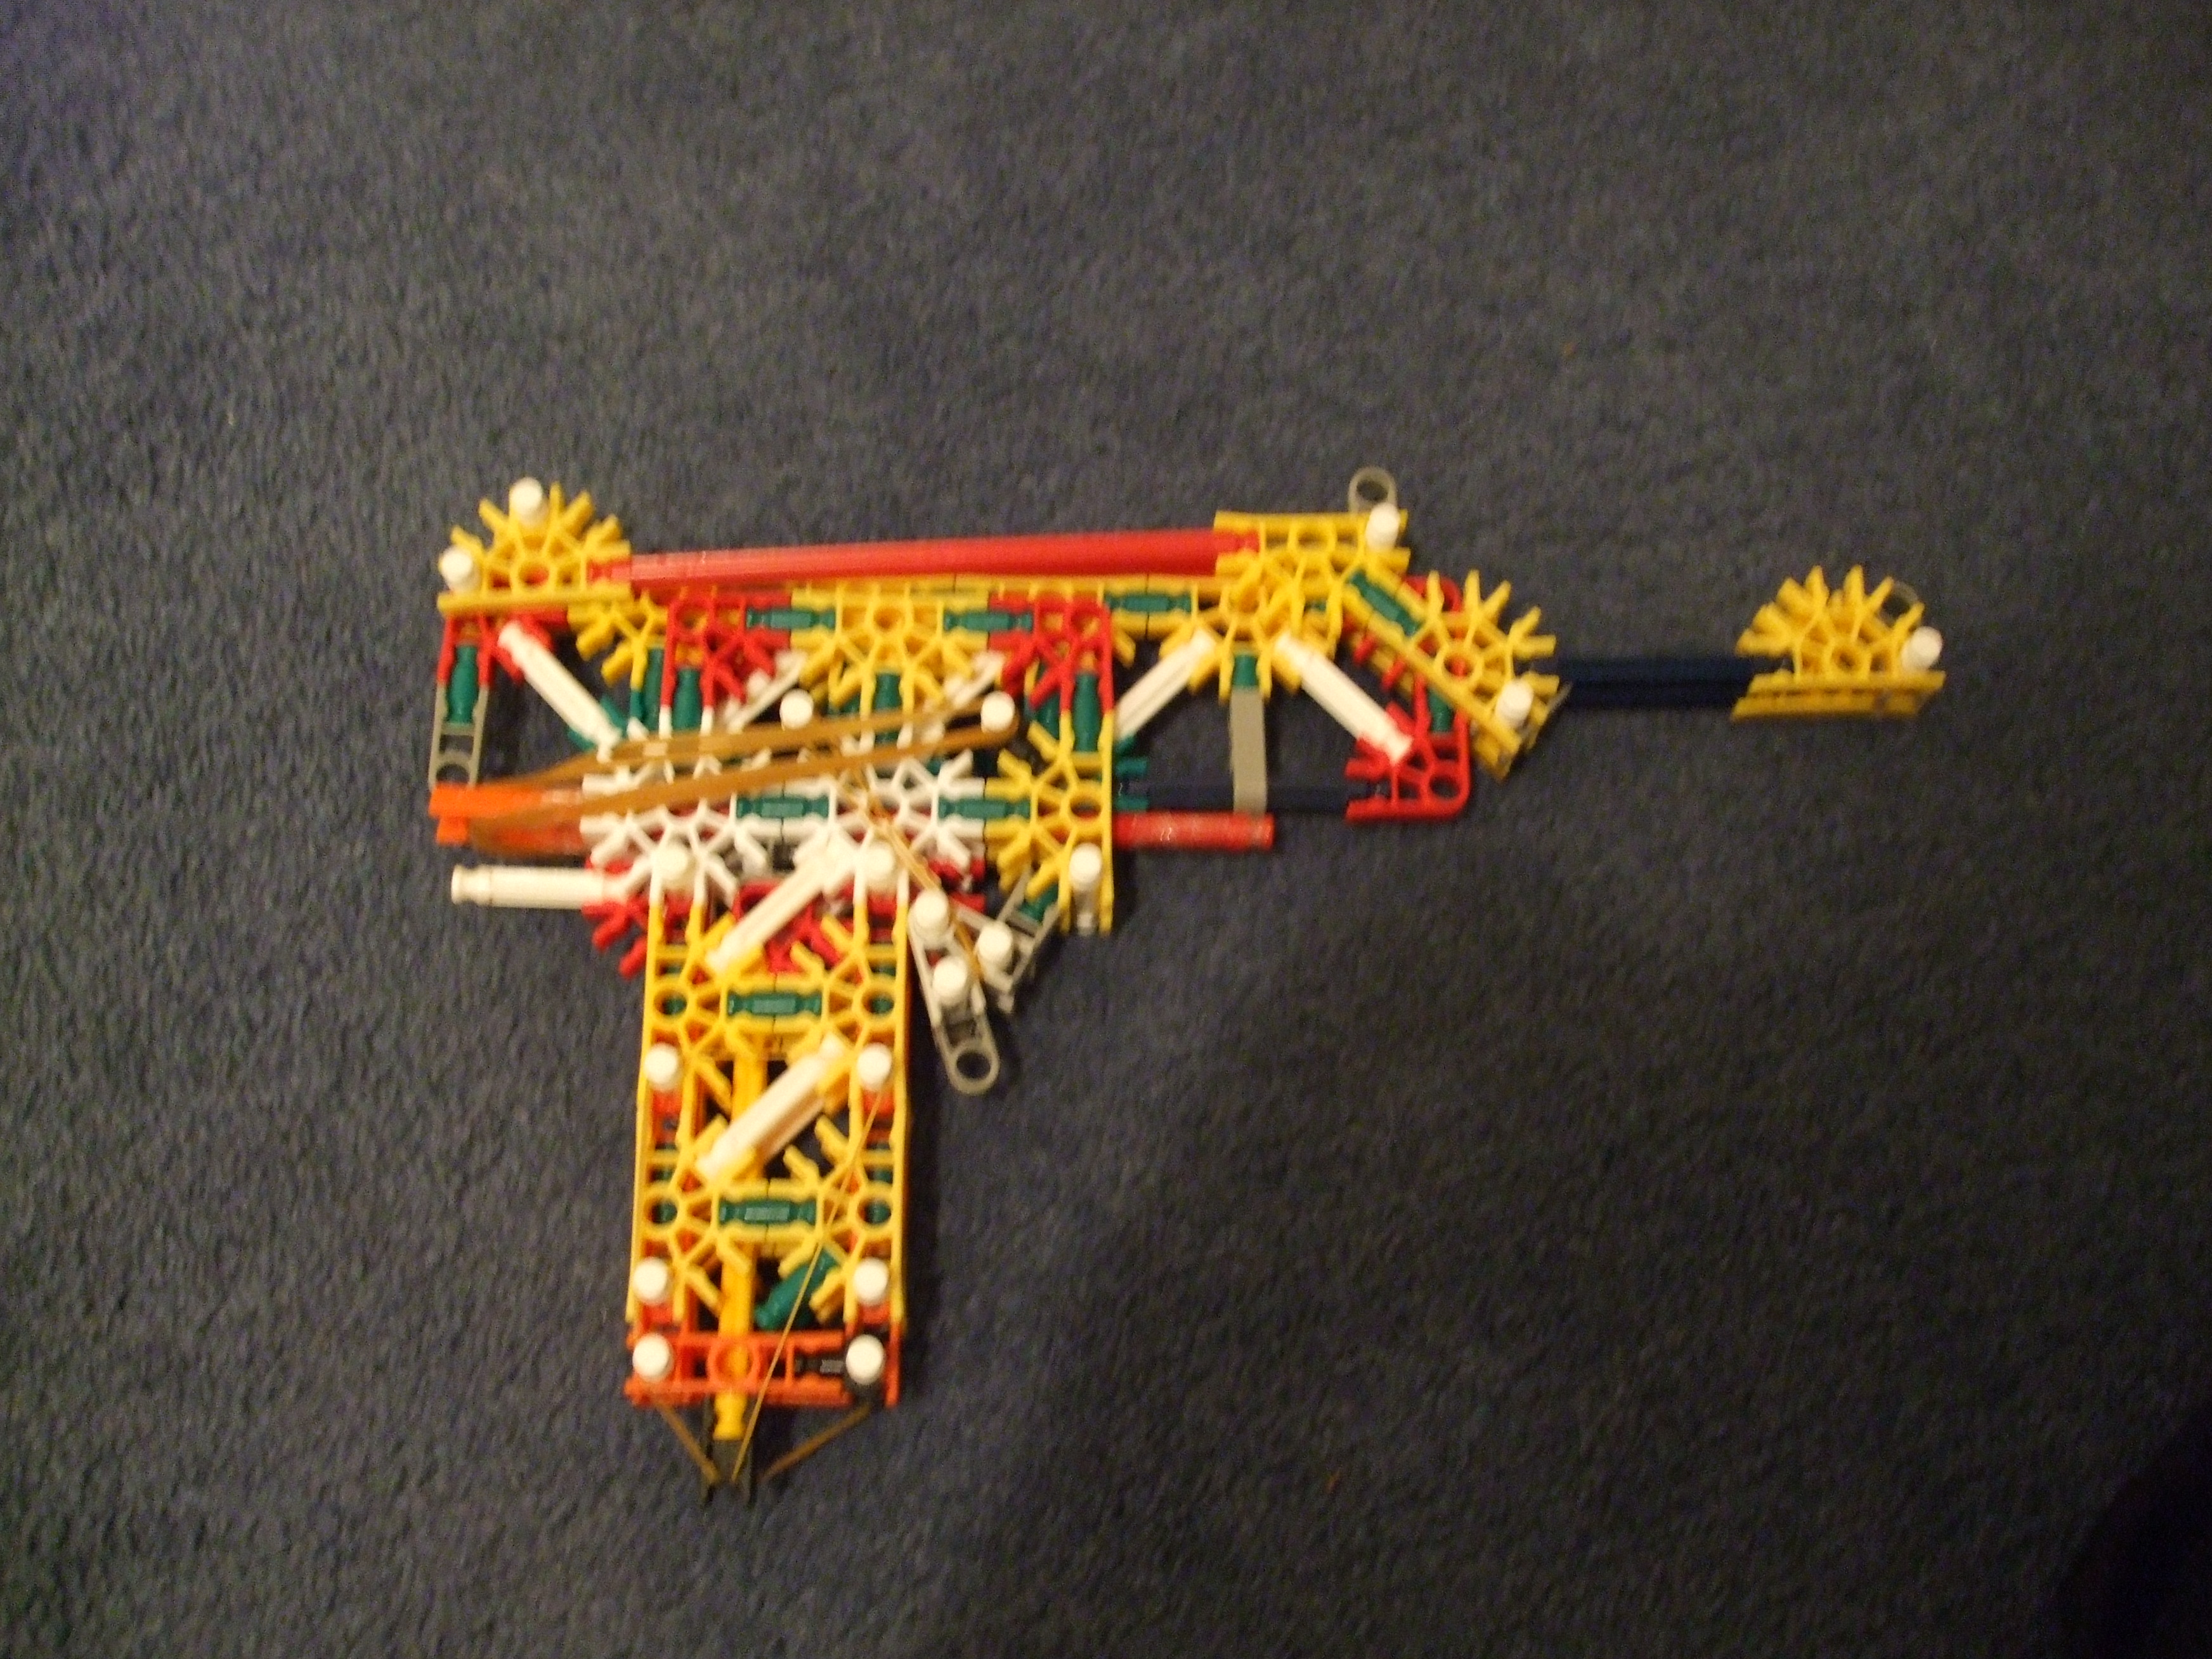 Knex pistol with magazine and folding stock